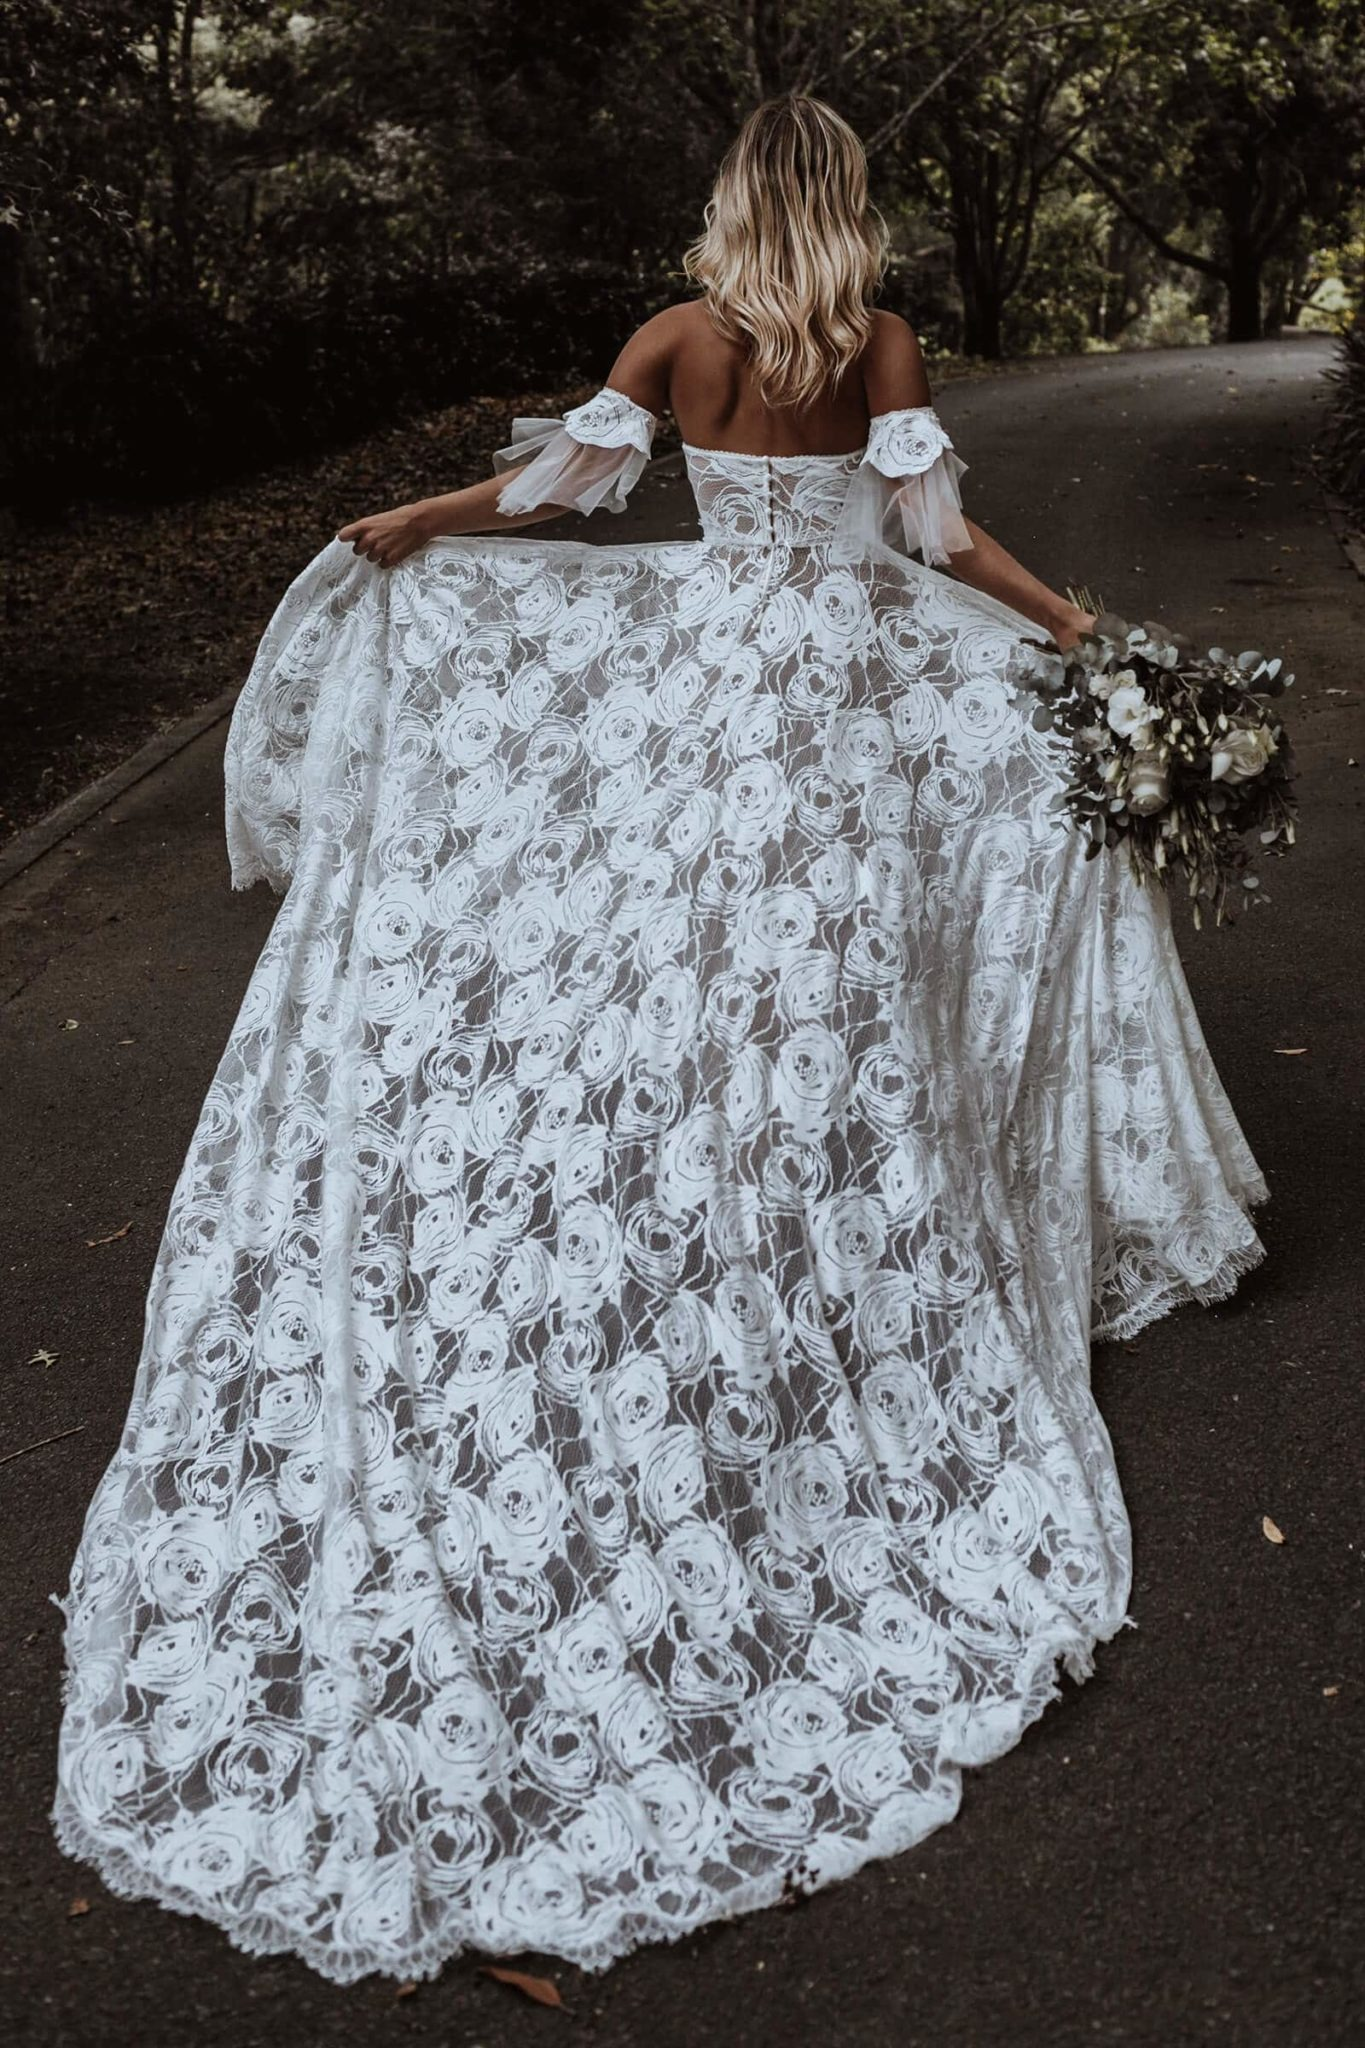 off shoulder corset style fitted bodice wedding dress with floral lace detailing